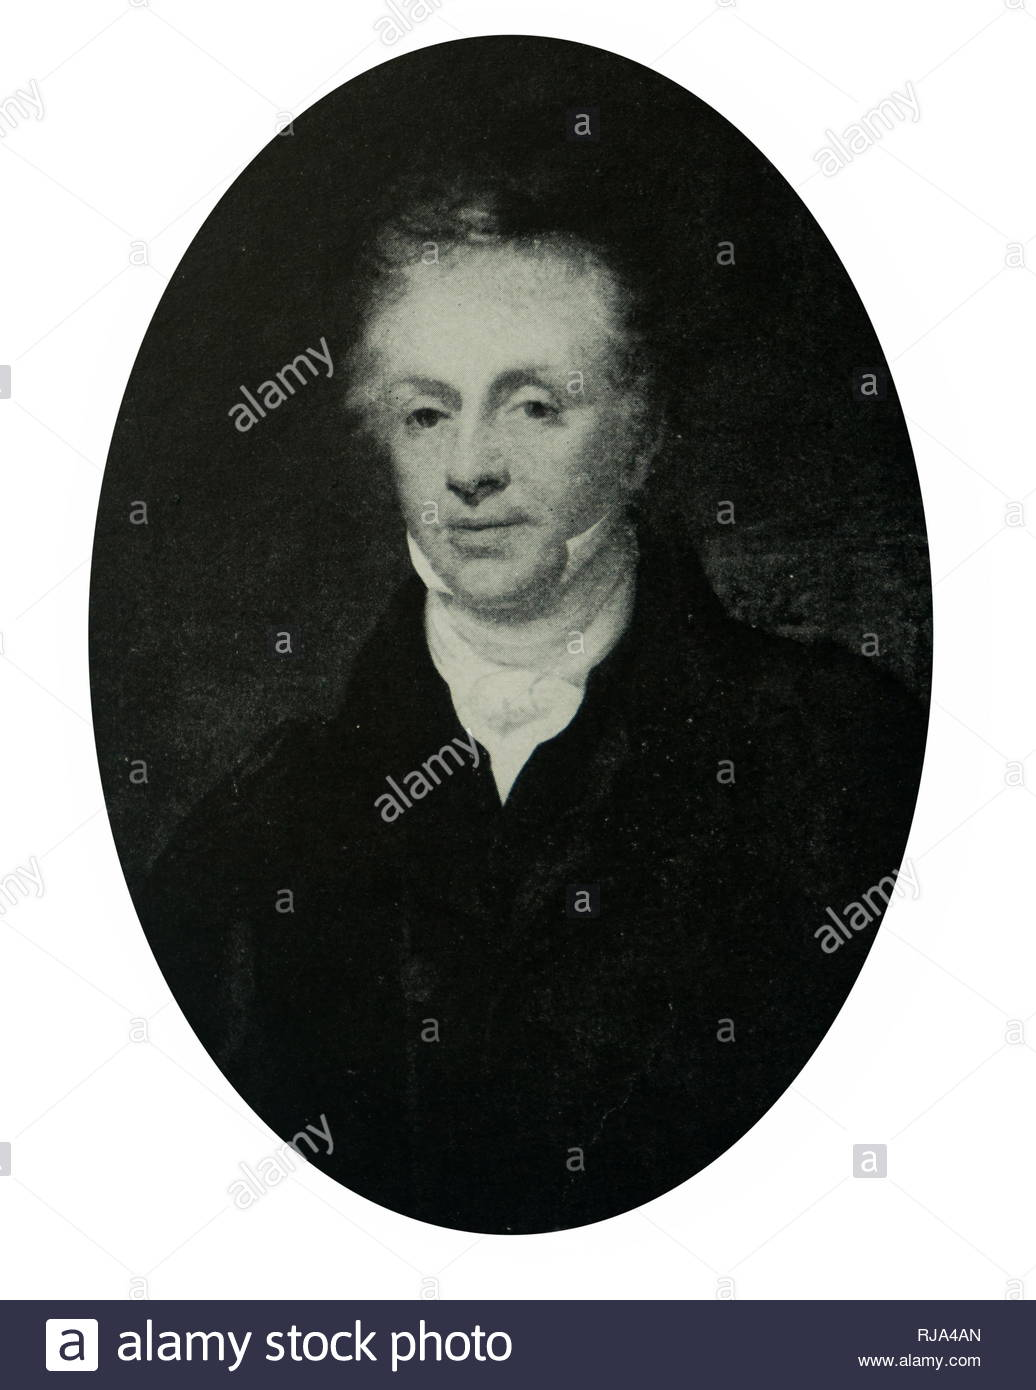 Portrait of Thomas Attwood (1783-1856) a British banker, economist, political campaigner and Member of Parliament. Dated 19th century - Stock Image